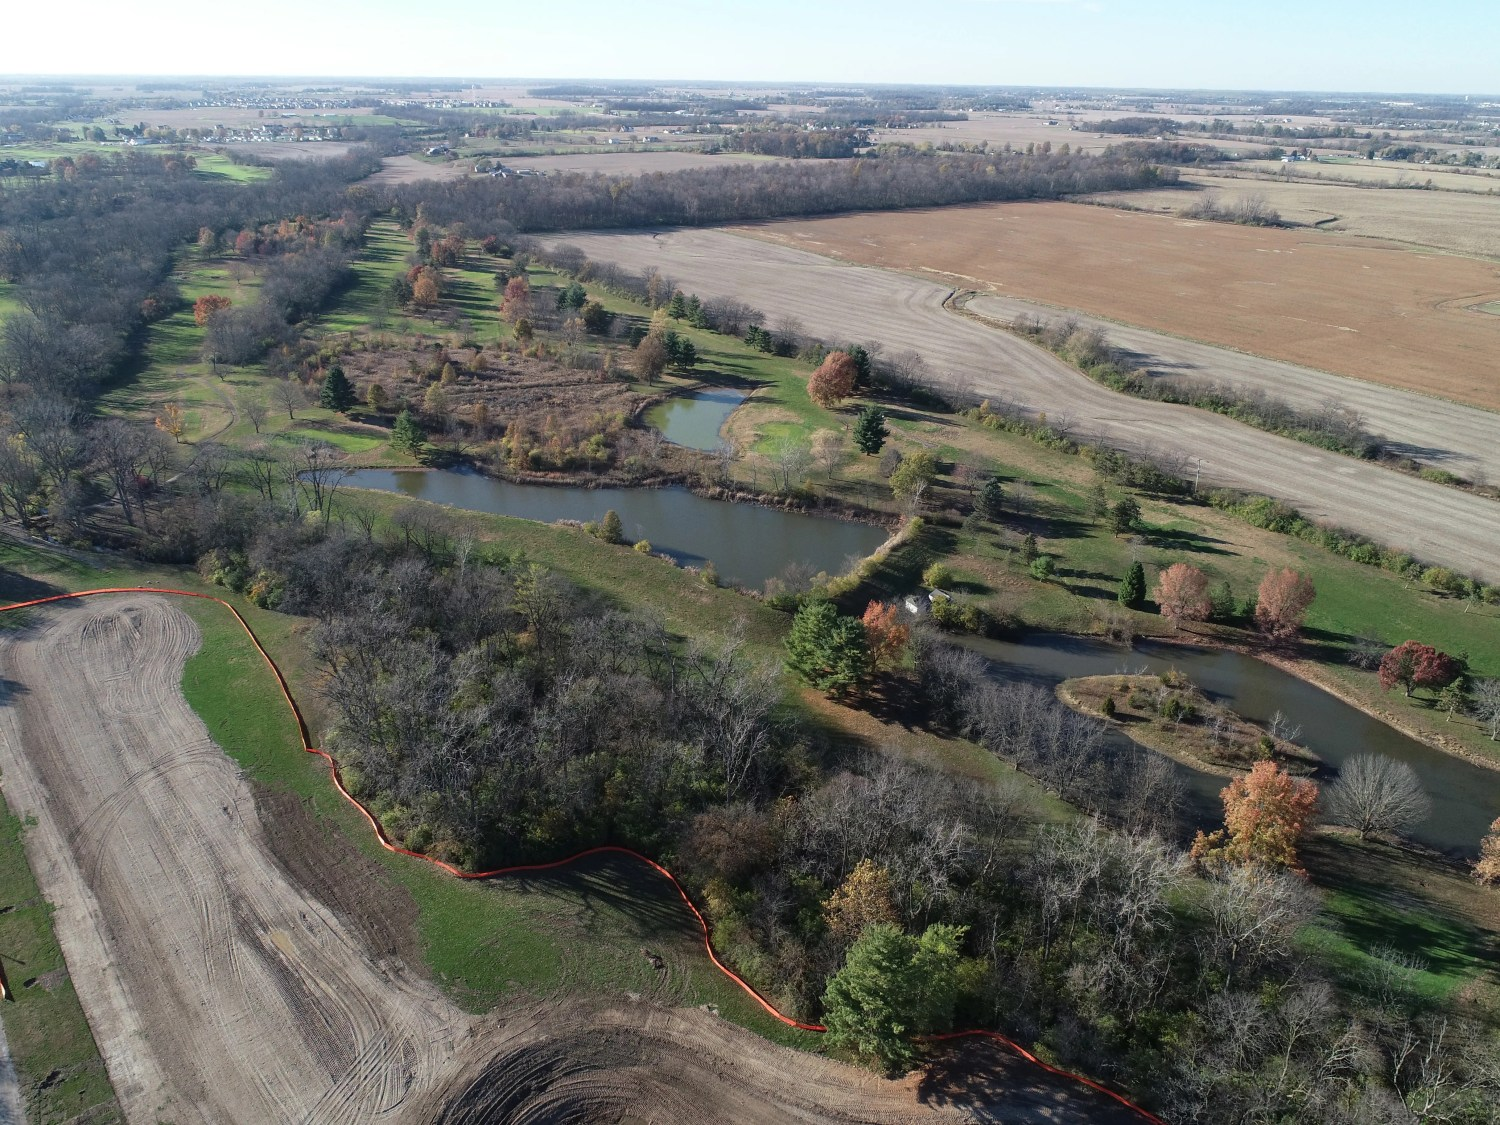 M/I Homes plans to build 416 homes on the site of the former Foxfire golf course.